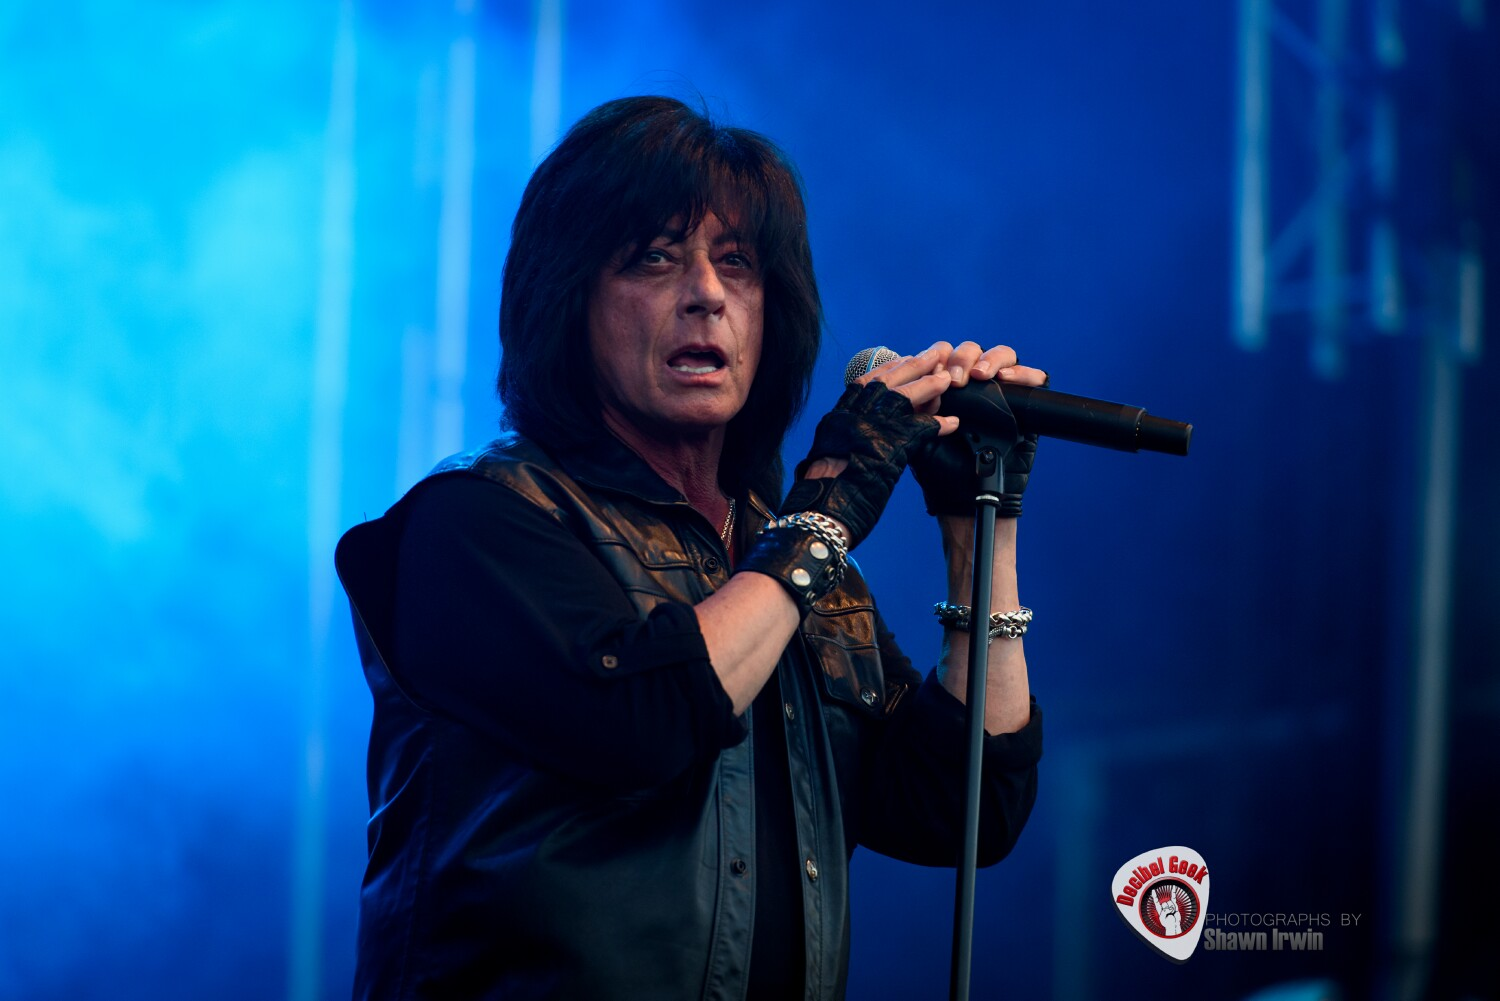 Joe Lynn Turner #6-Sweden Rock 2019-Shawn Irwin